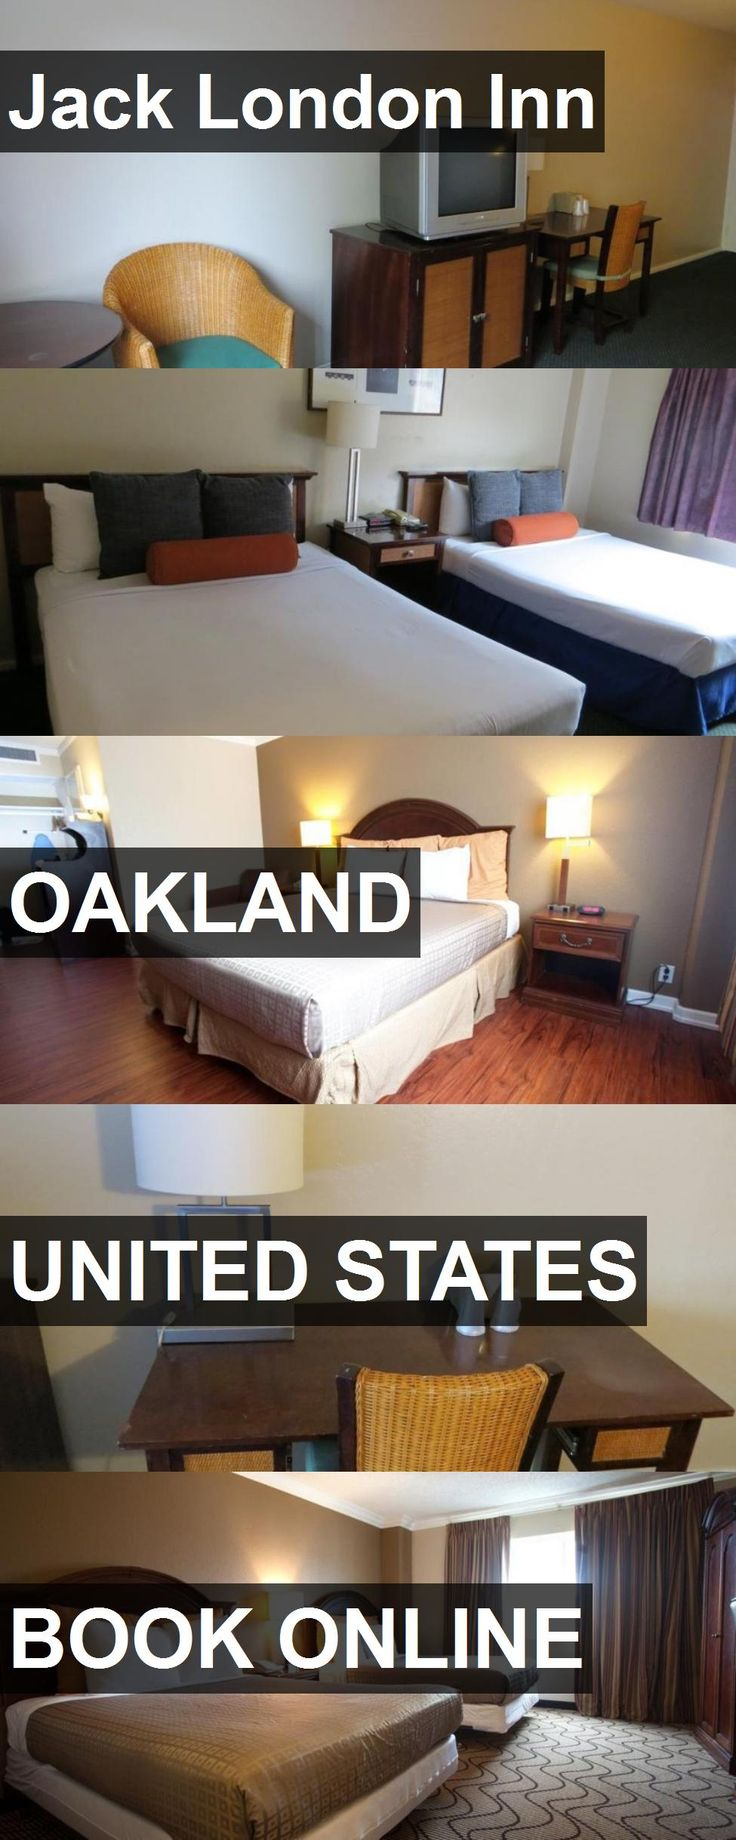 Hotel Jack London Inn in Oakland, United States. For more information, photos, reviews and best prices please follow the link. #UnitedStates #Oakland #JackLondonInn #hotel #travel #vacation